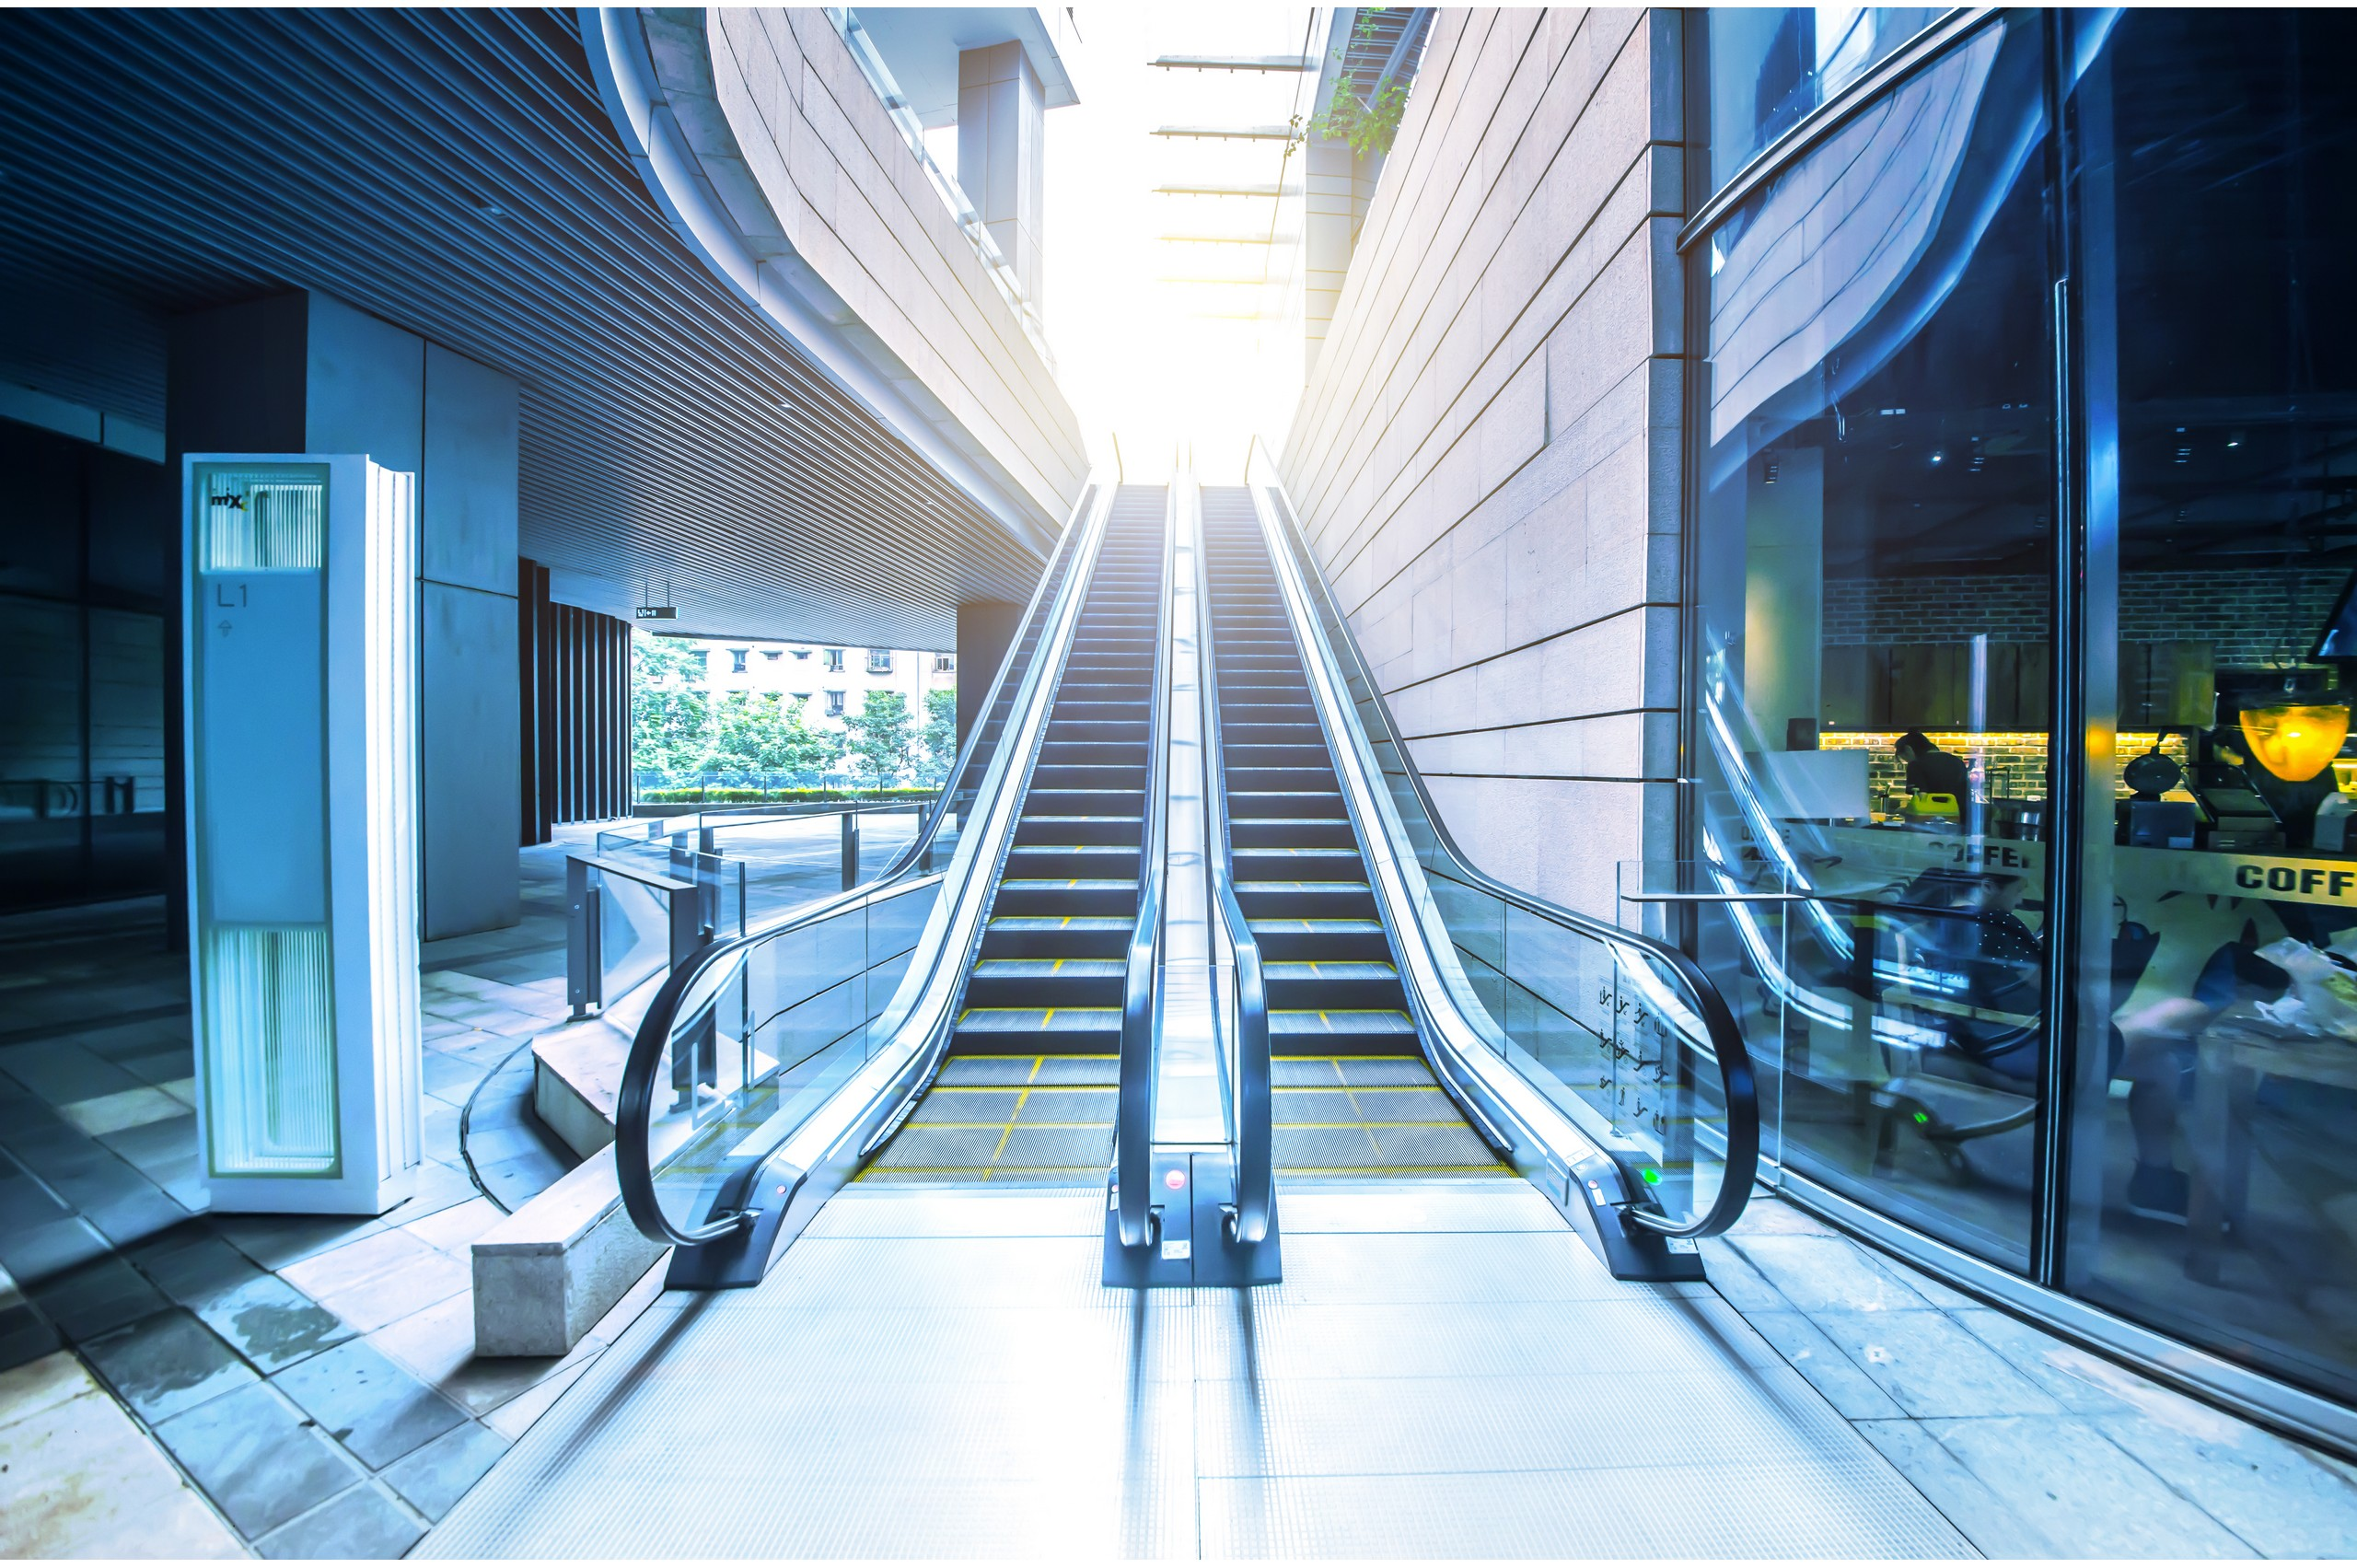 Property News: Fast-tracking the future of shopping malls